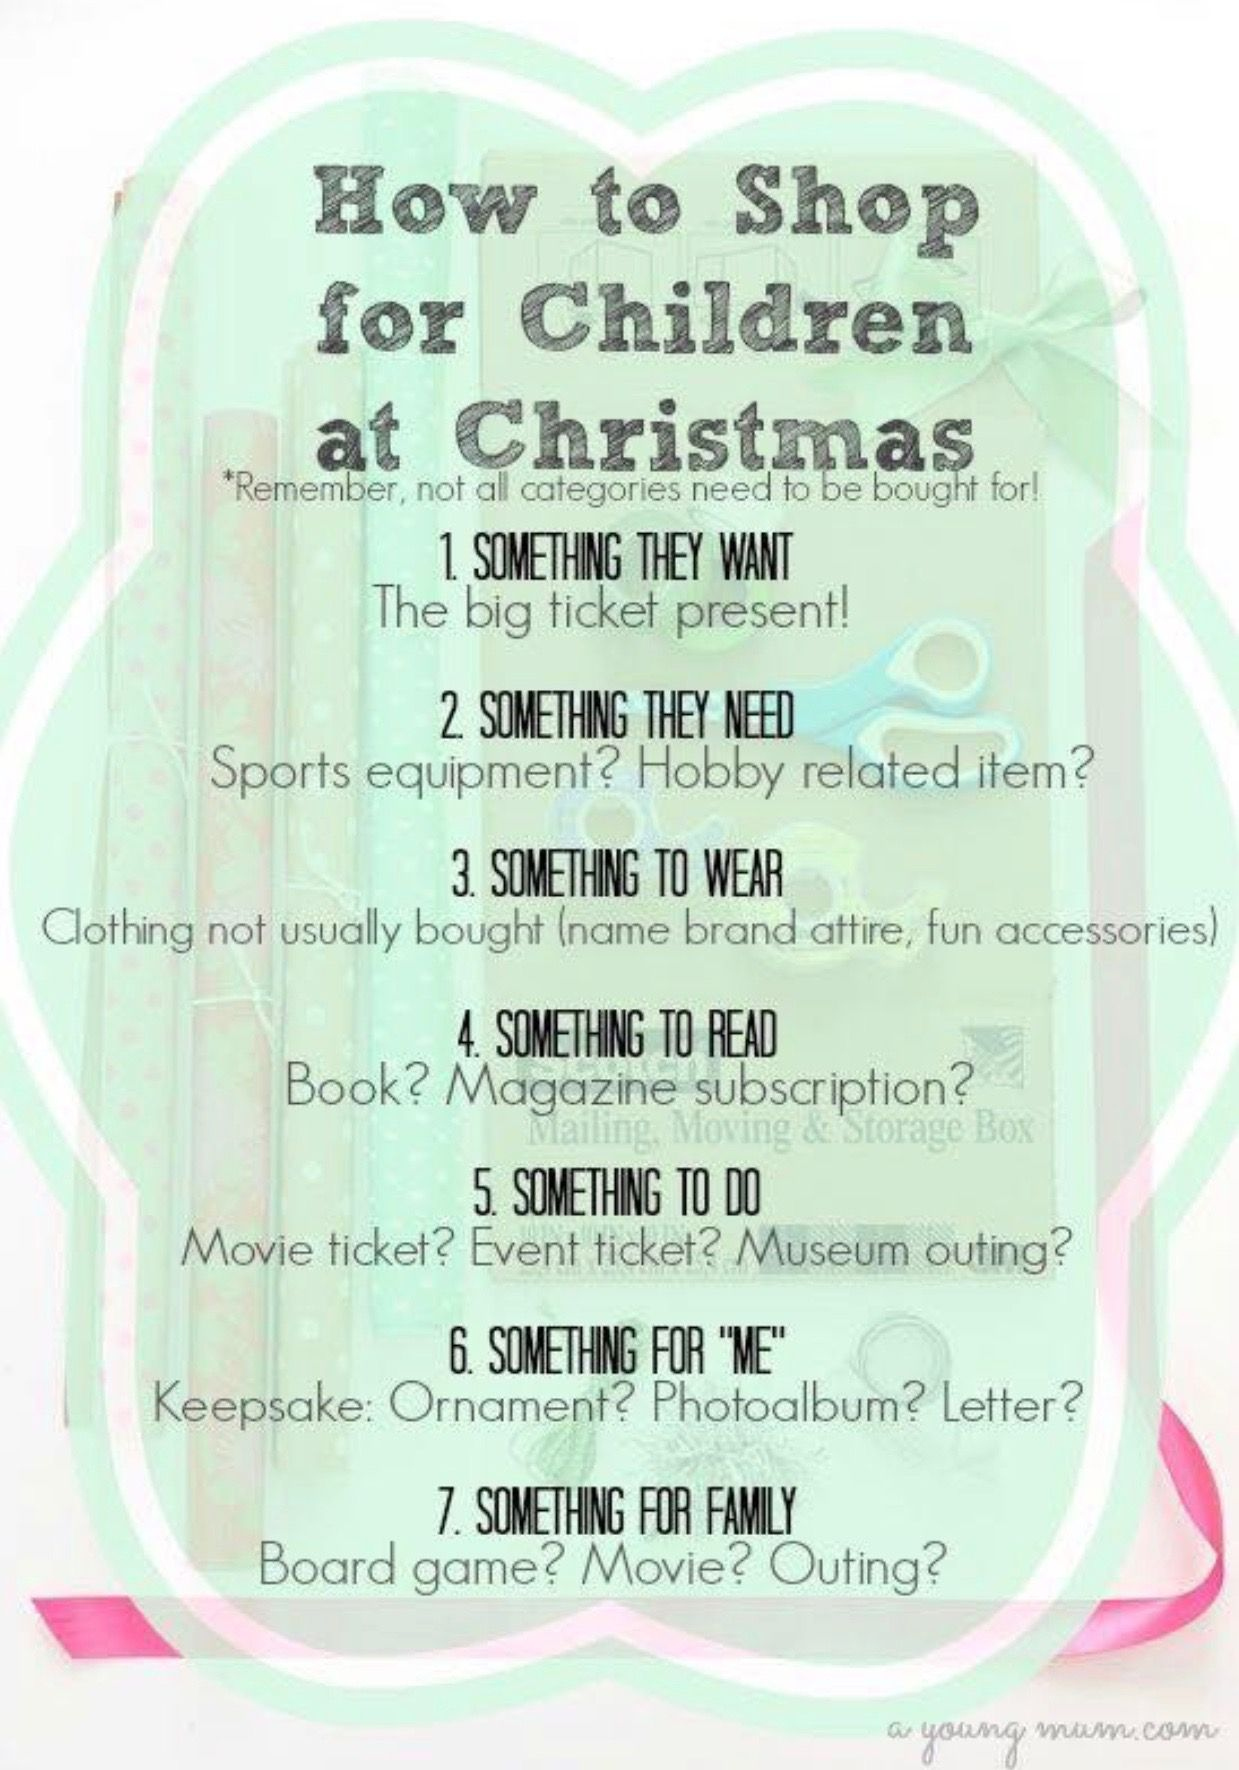 Kind of a cool idea. I always go haywire when Christmas shopping ...